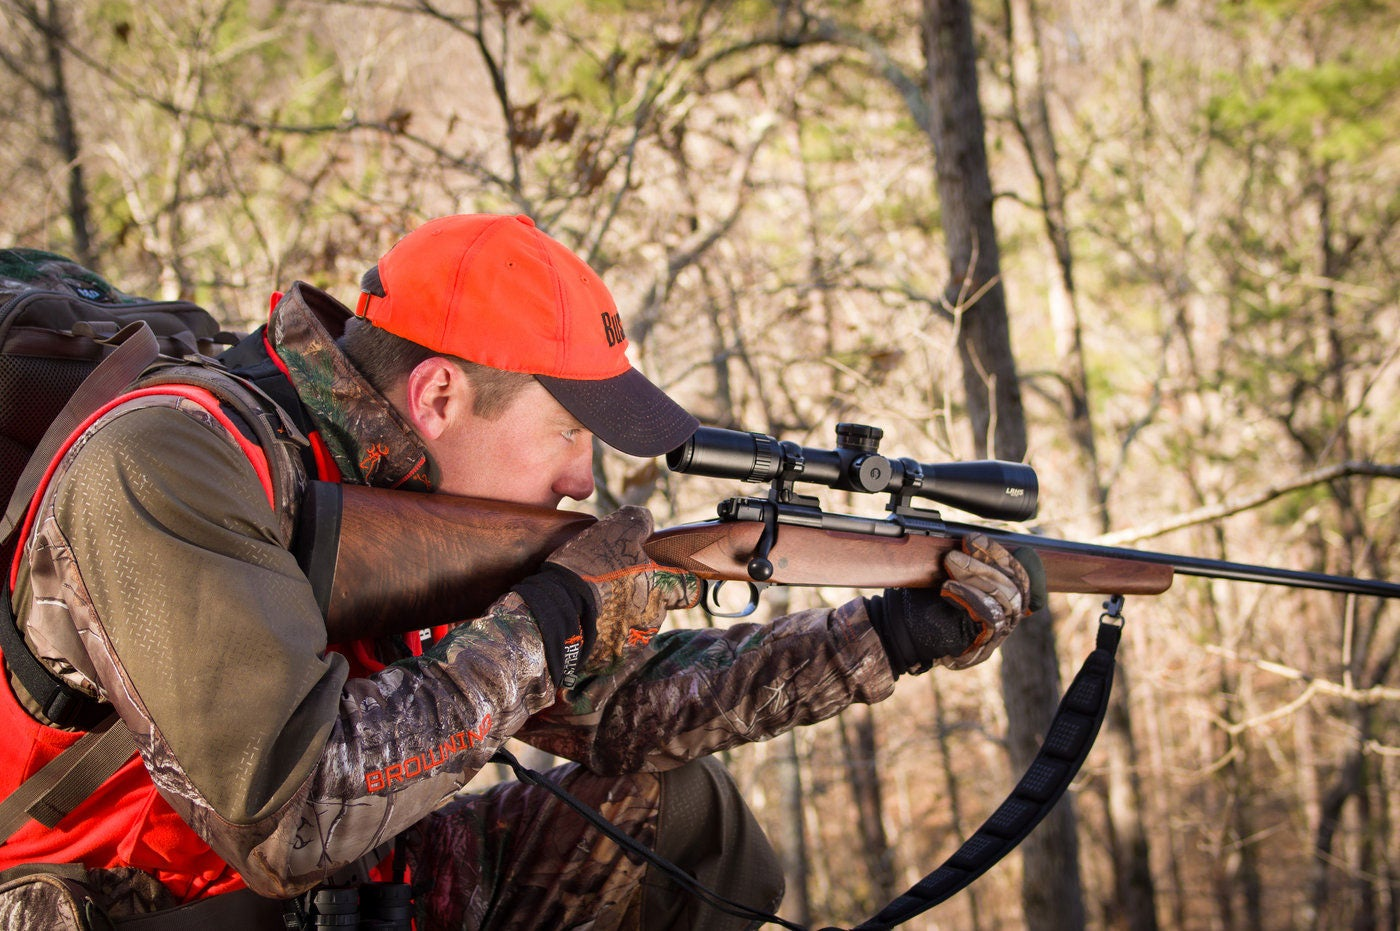 A hunter aiming a rifle in the woods.